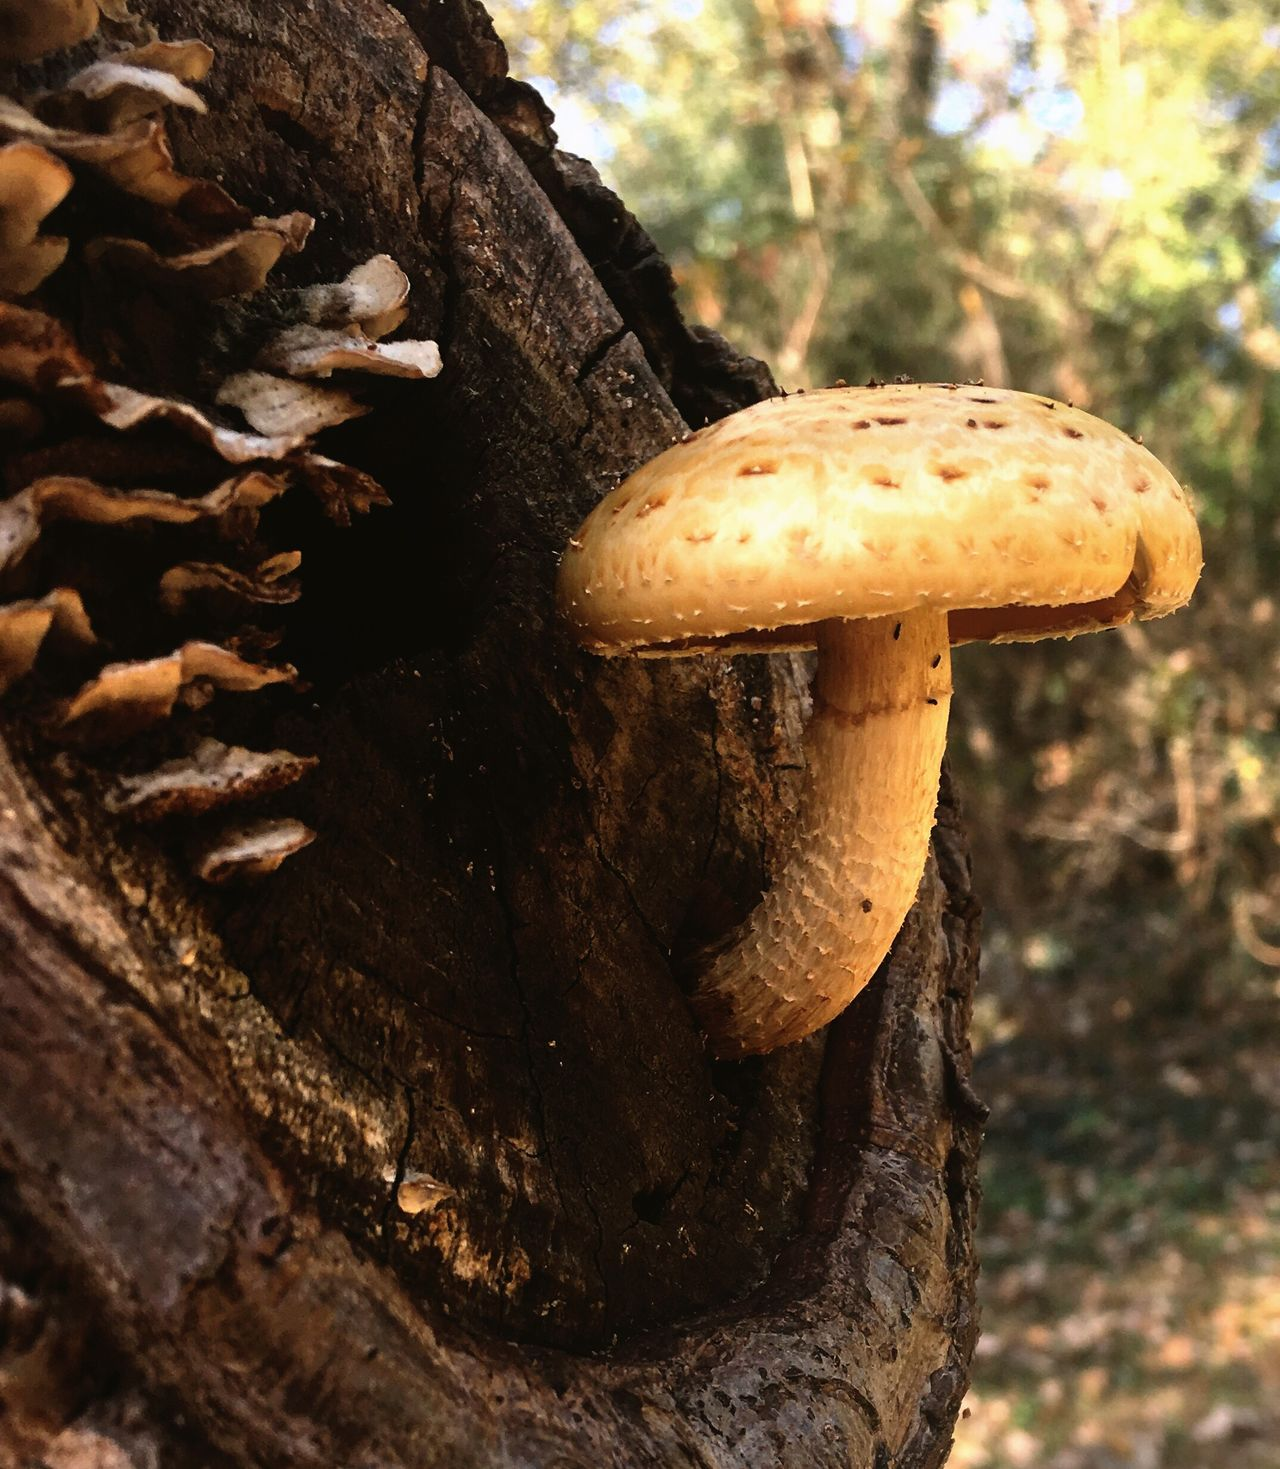 Finding New Frontiers Treetastic Tree Trees And Nature Treelovers Yard Mushrooms Yardpic Mushrooms Fungus Amongus Mushroom On Tree Mushroom Close Ups Mushroom Photography Mushroom Fungus 🍄